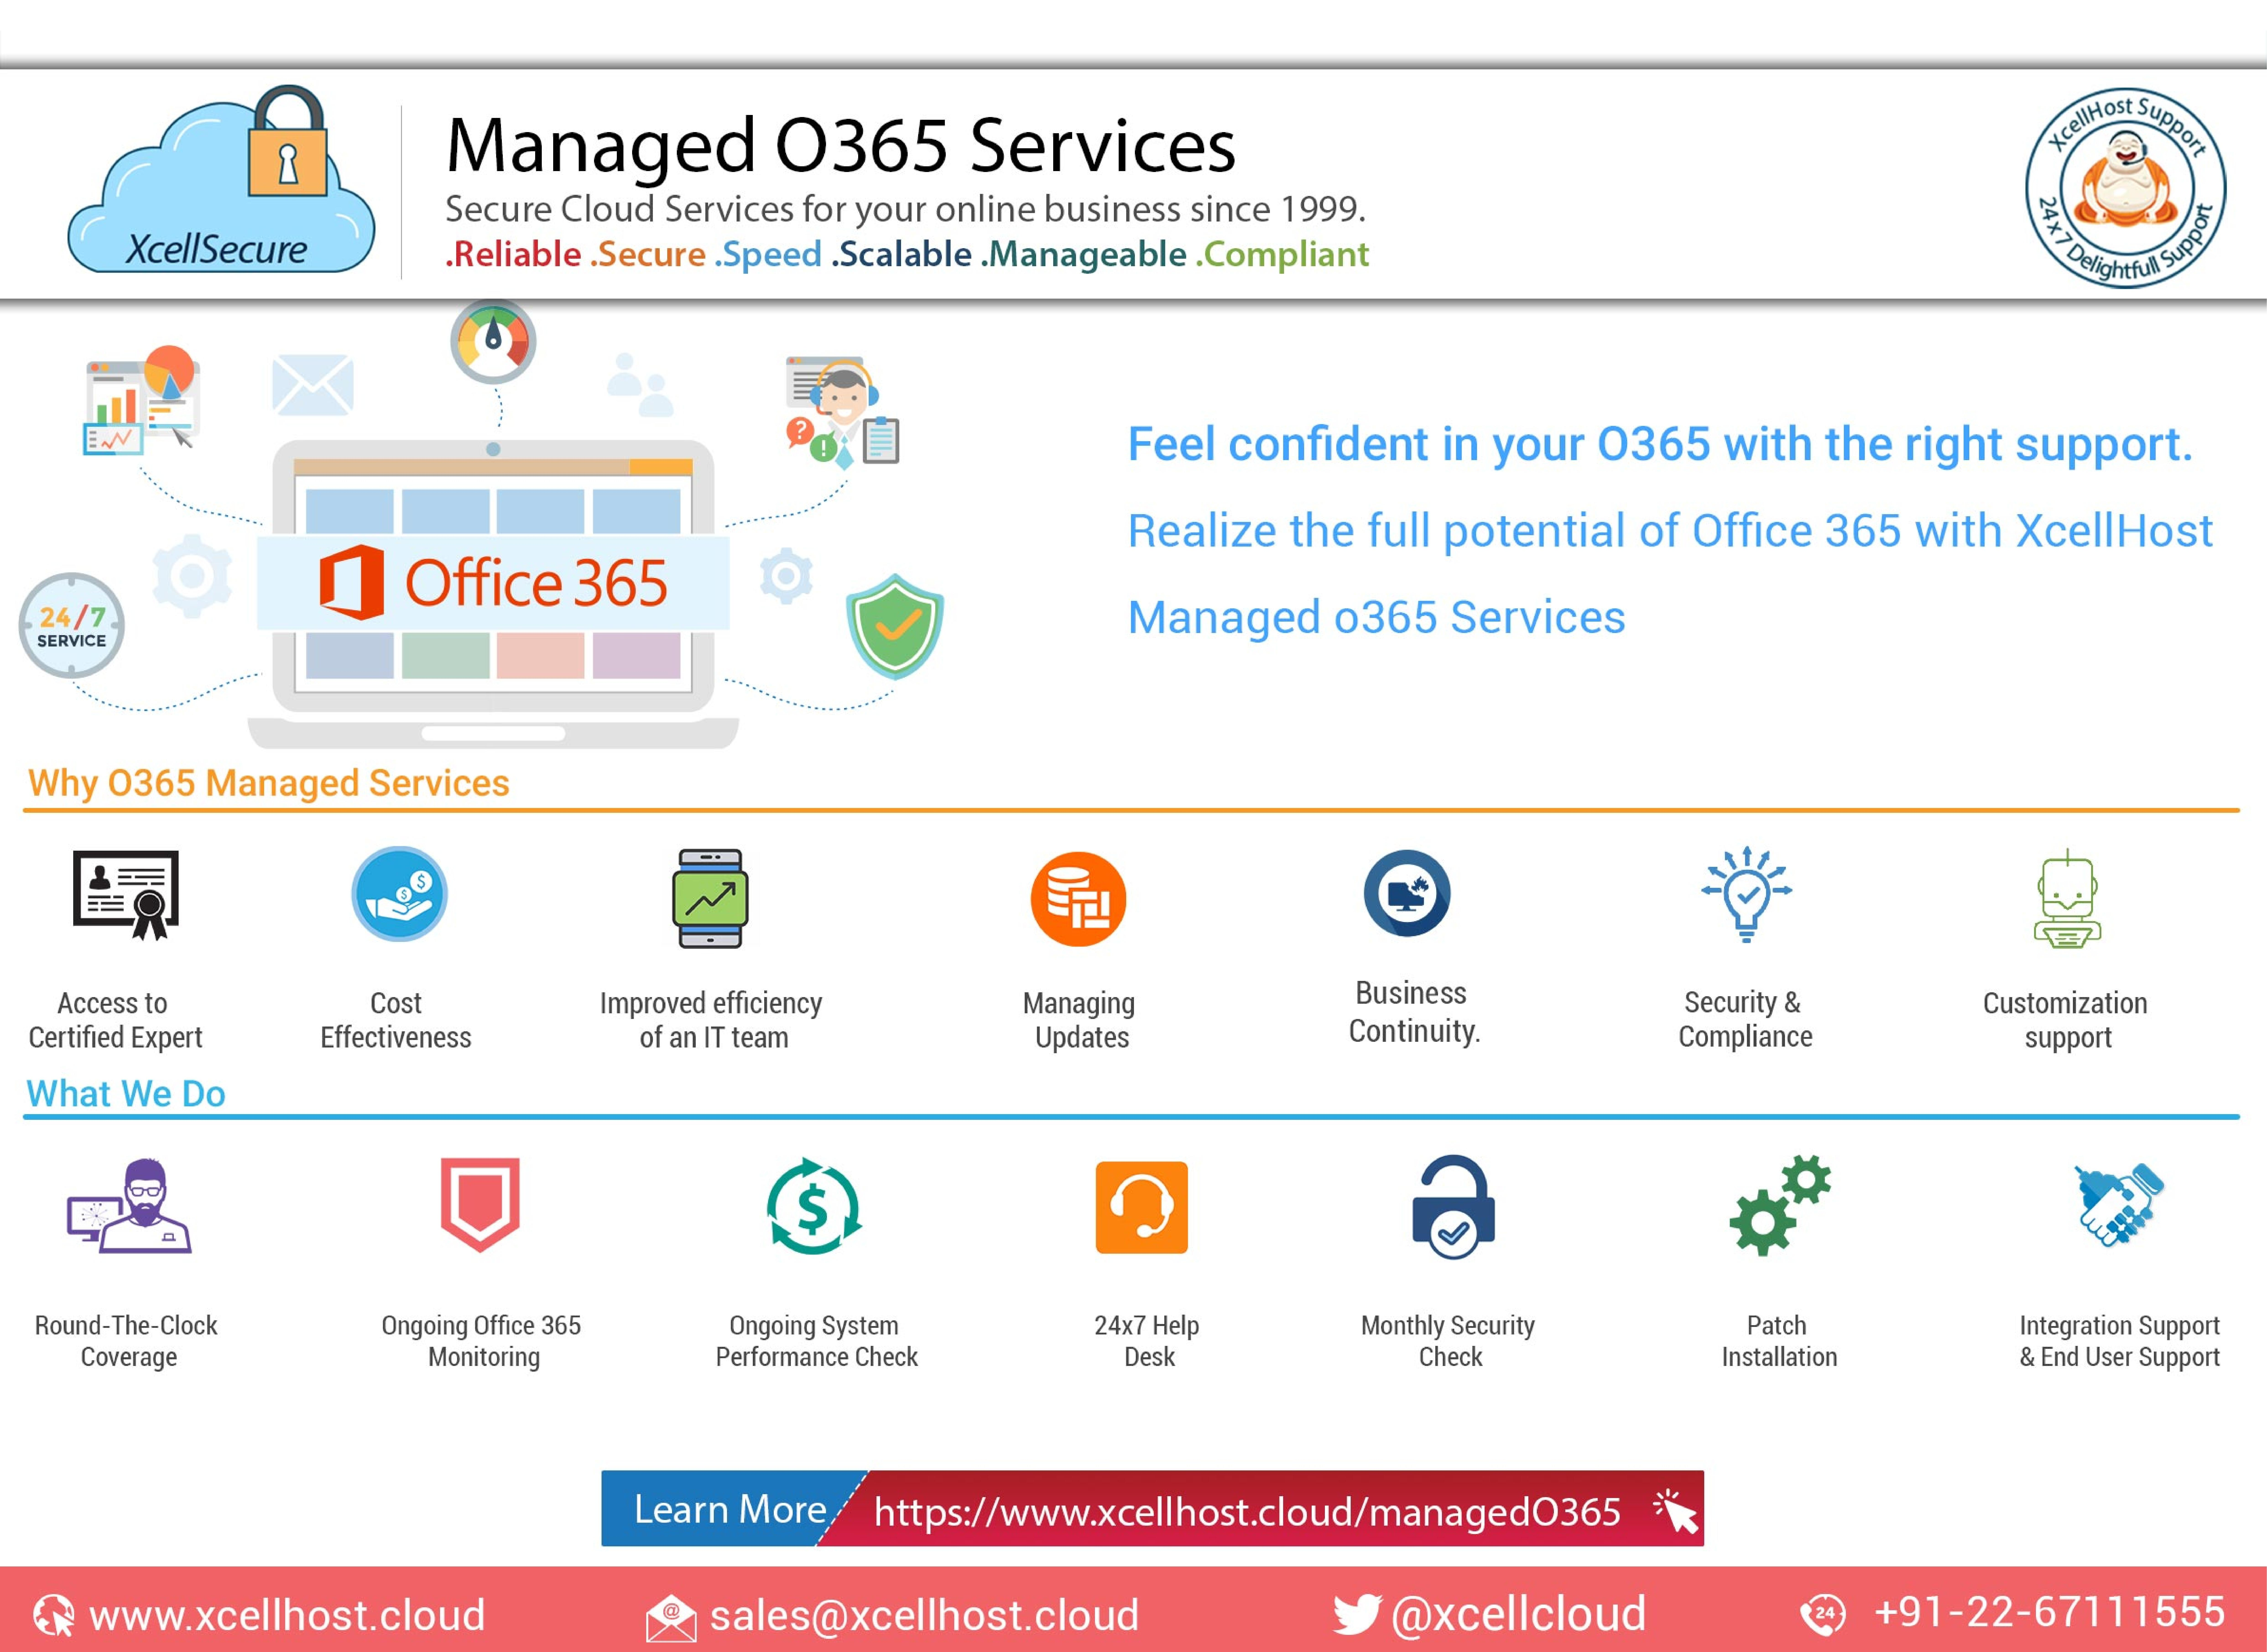 XLIN-28 Microsoft Security Services-page-008